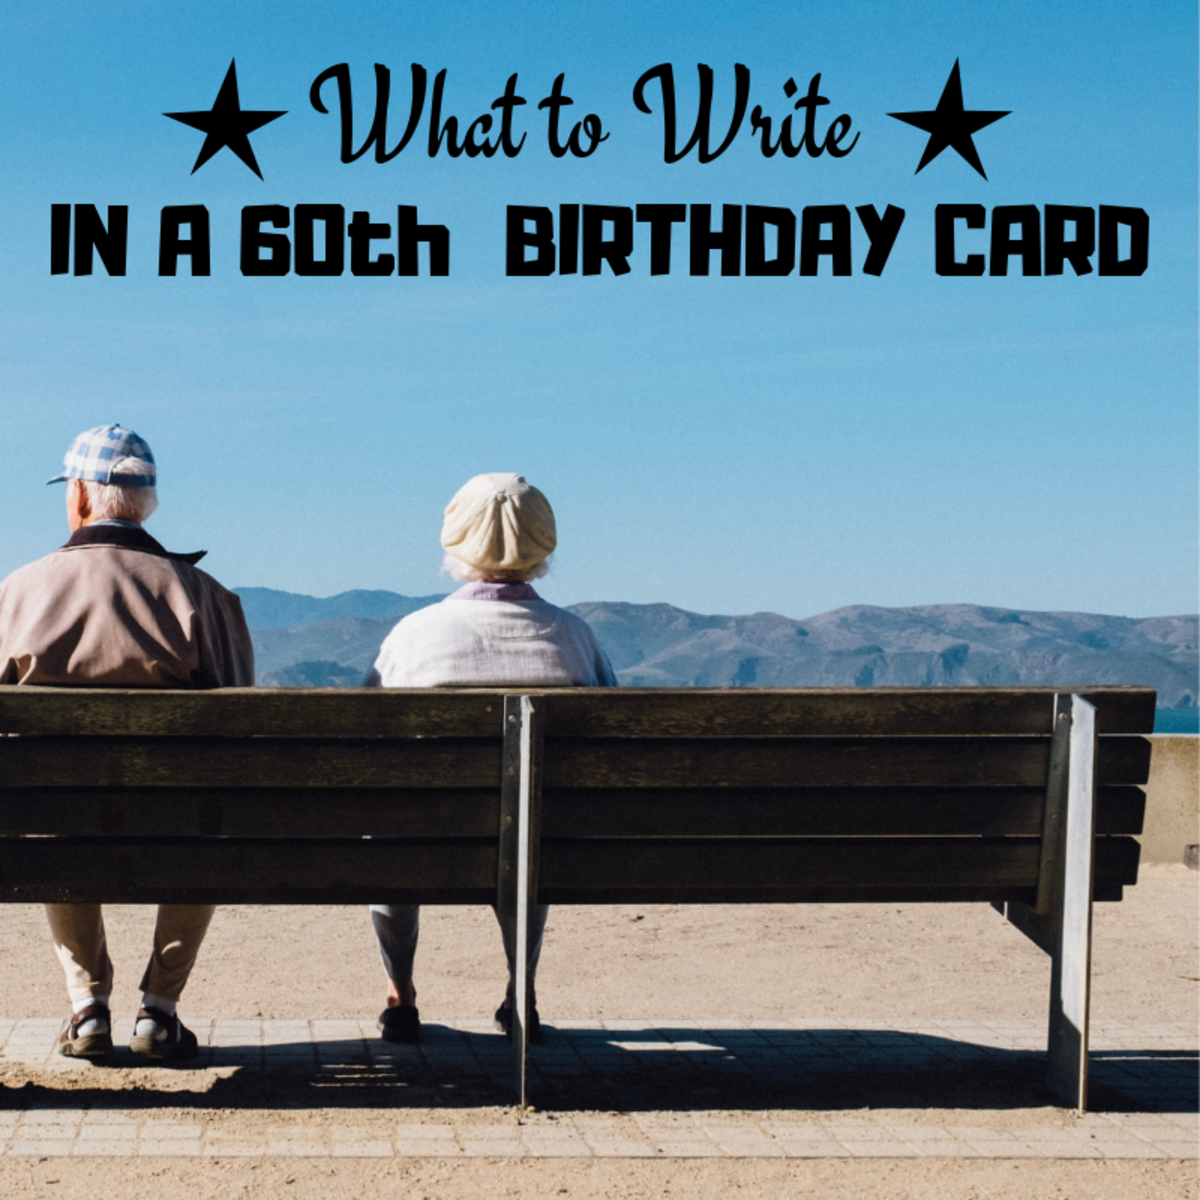 Pleasing 60Th Birthday Card Messages Wishes Sayings And Poems Holidappy Funny Birthday Cards Online Bapapcheapnameinfo